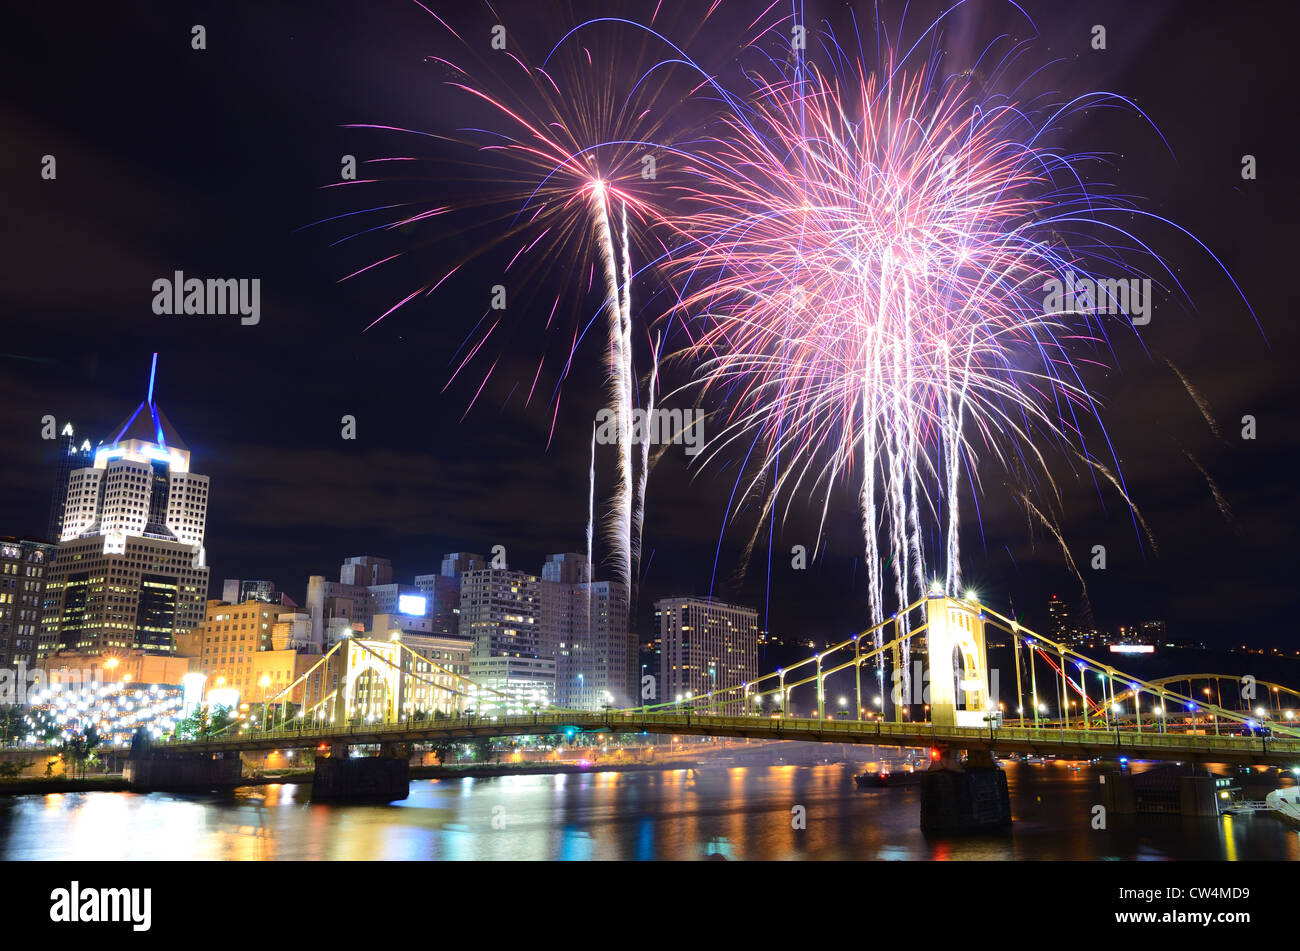 Fireworks on the Allegheny river in downtown Pittsburgh, Pennsylvania, USA. - Stock Image